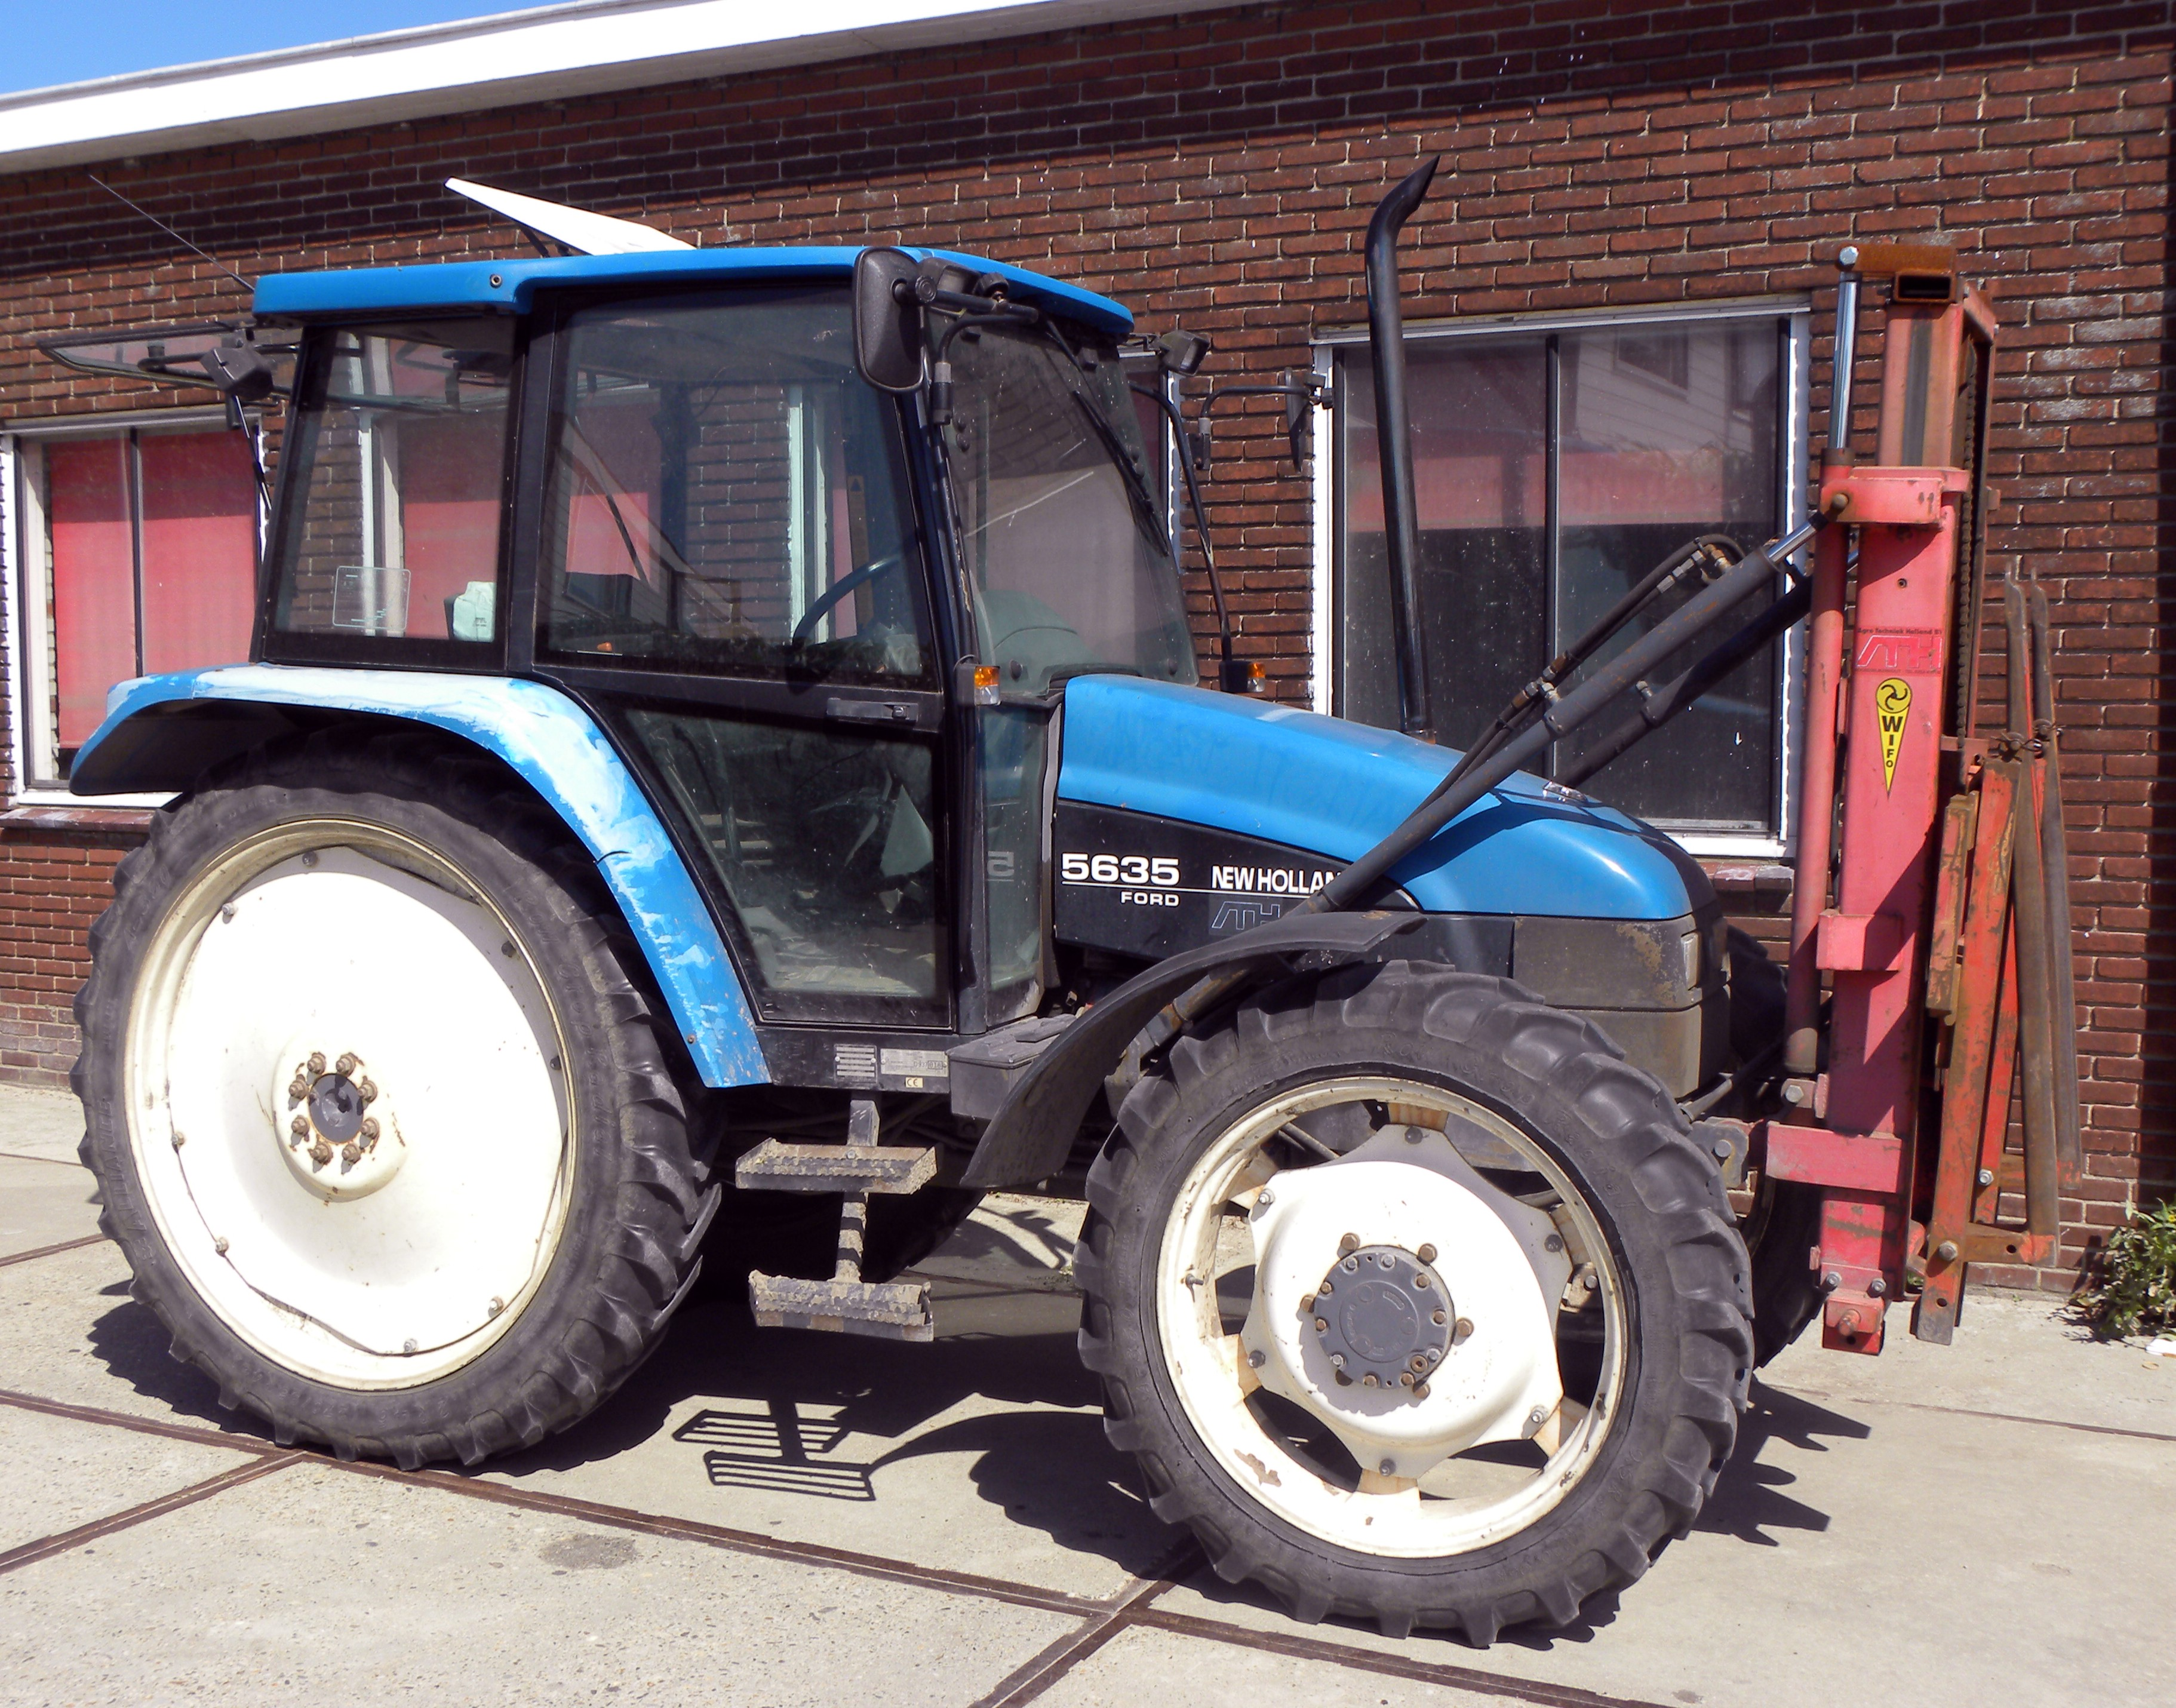 New holland ford photo - 7